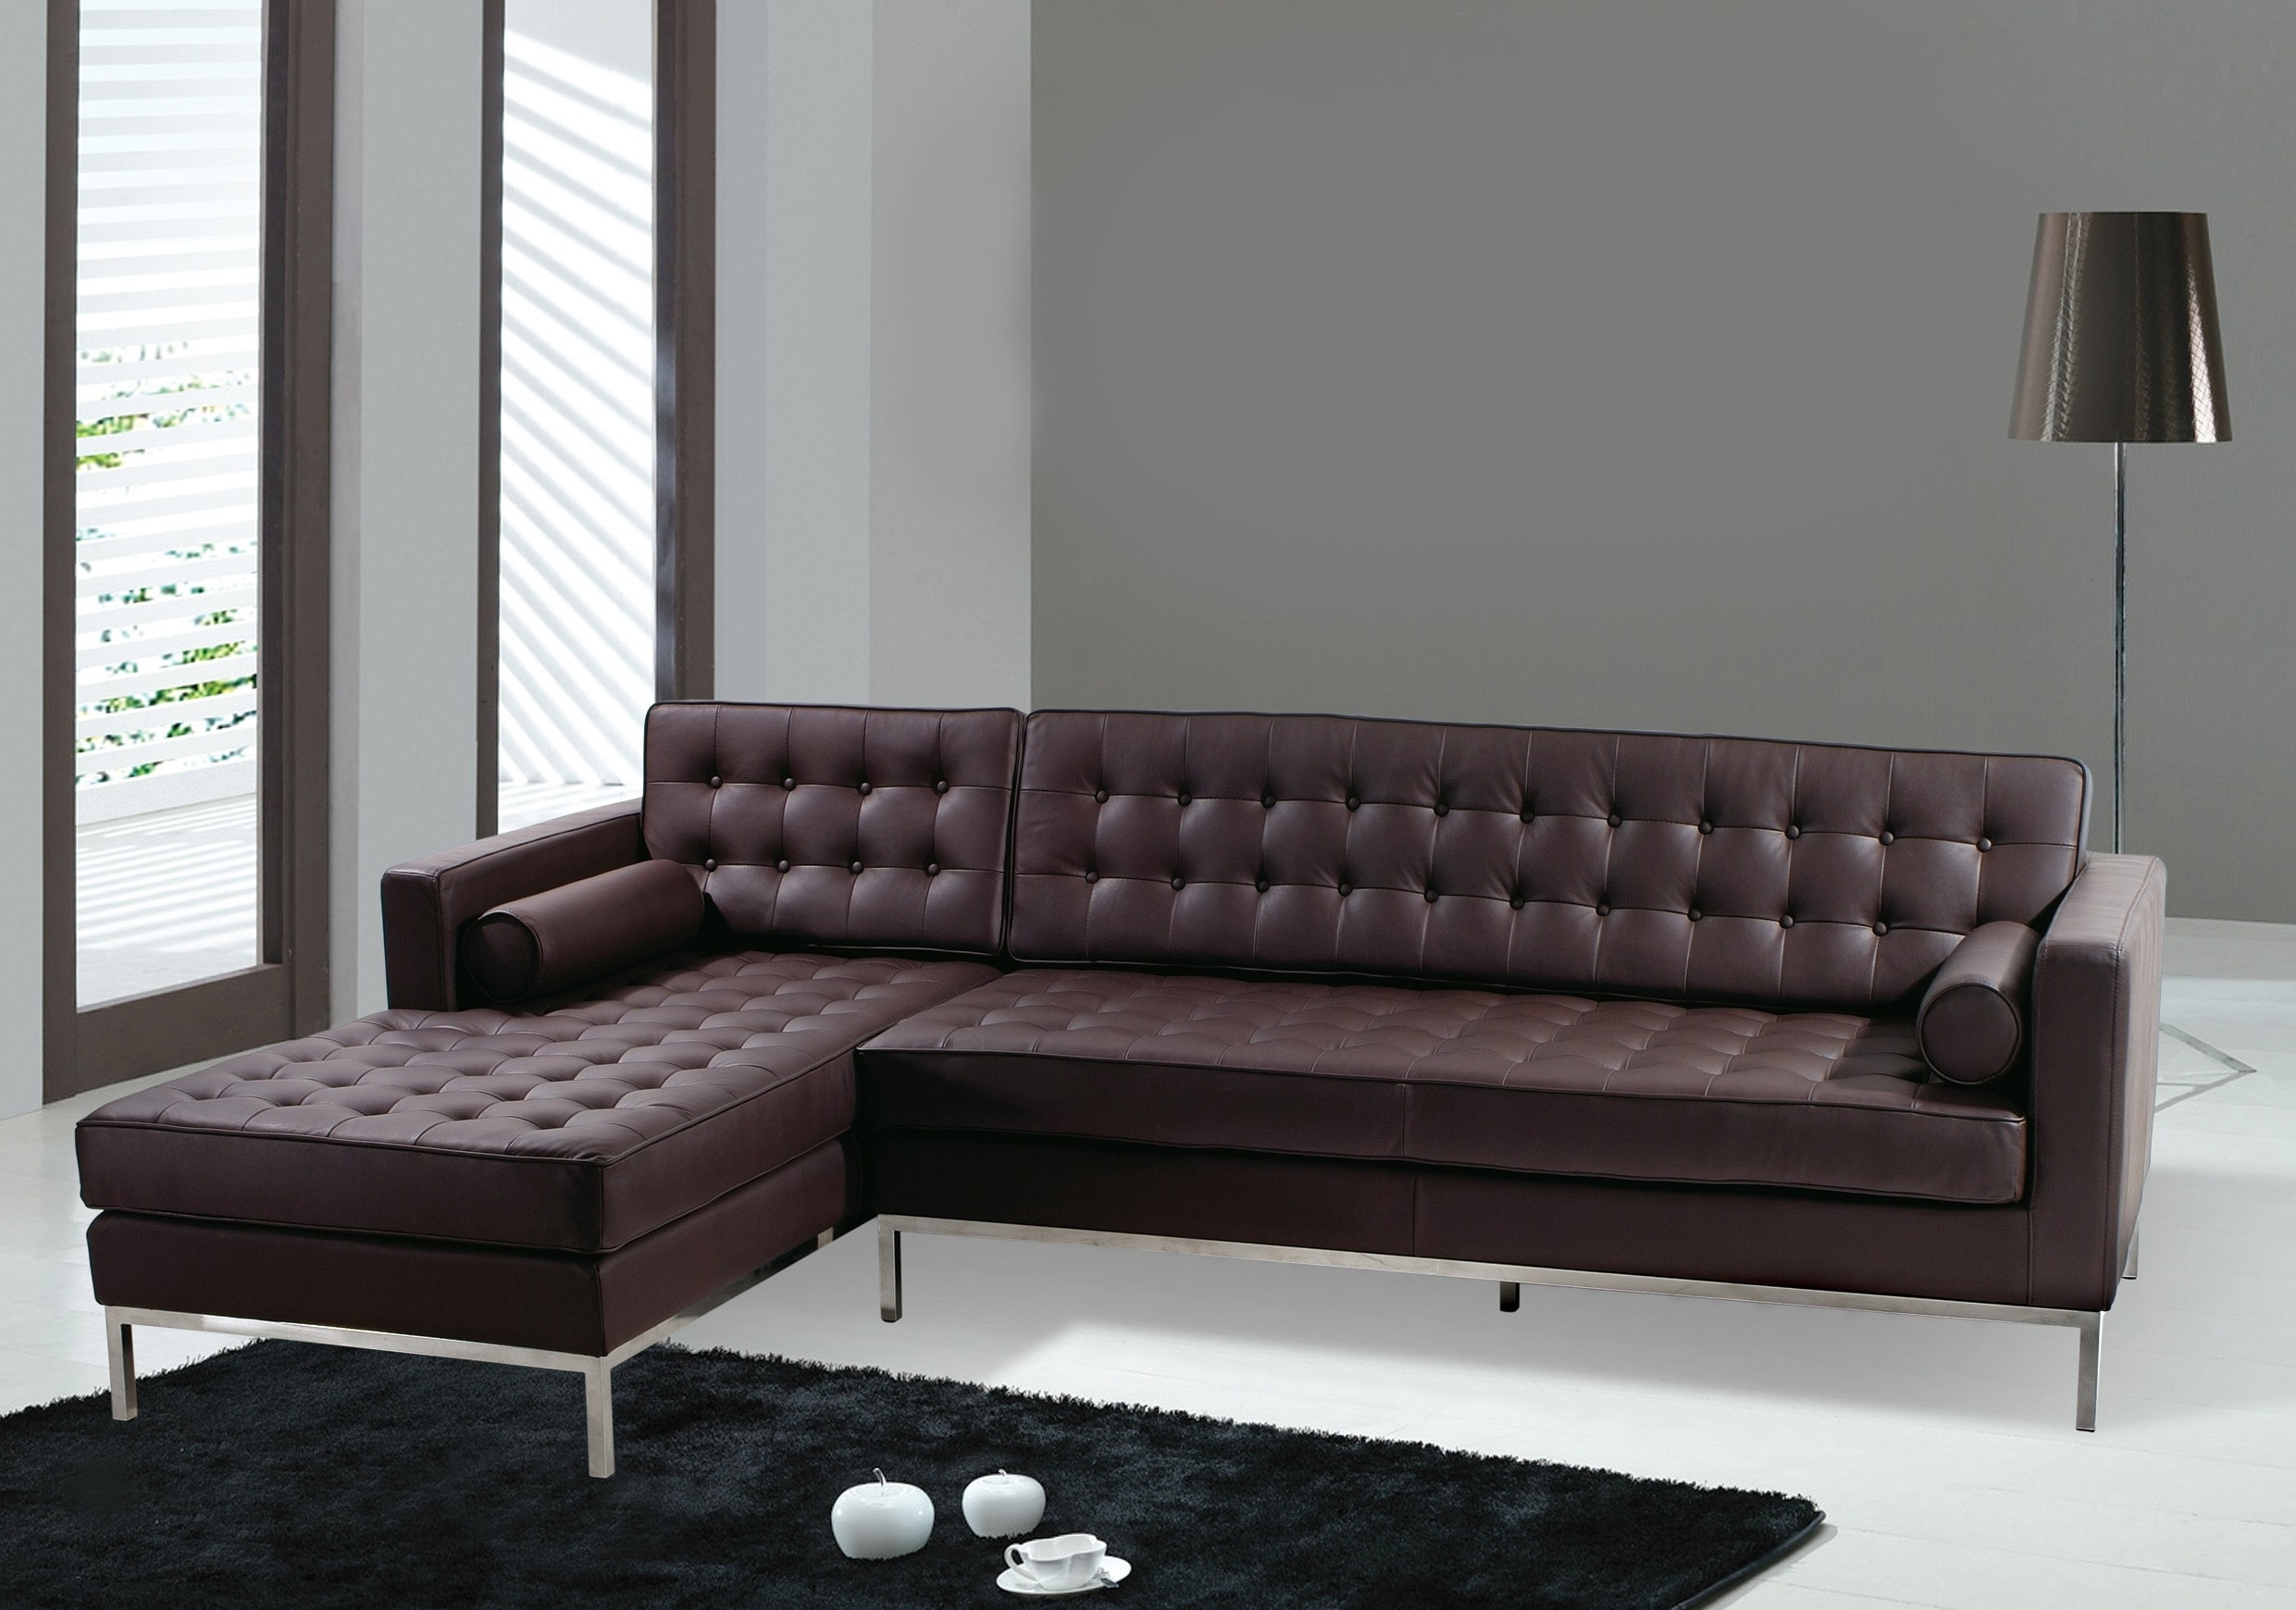 Best Of Sectional Sofa Bed Vancouver Bc – Mediasupload Within Widely Used Vancouver Bc Sectional Sofas (View 2 of 15)